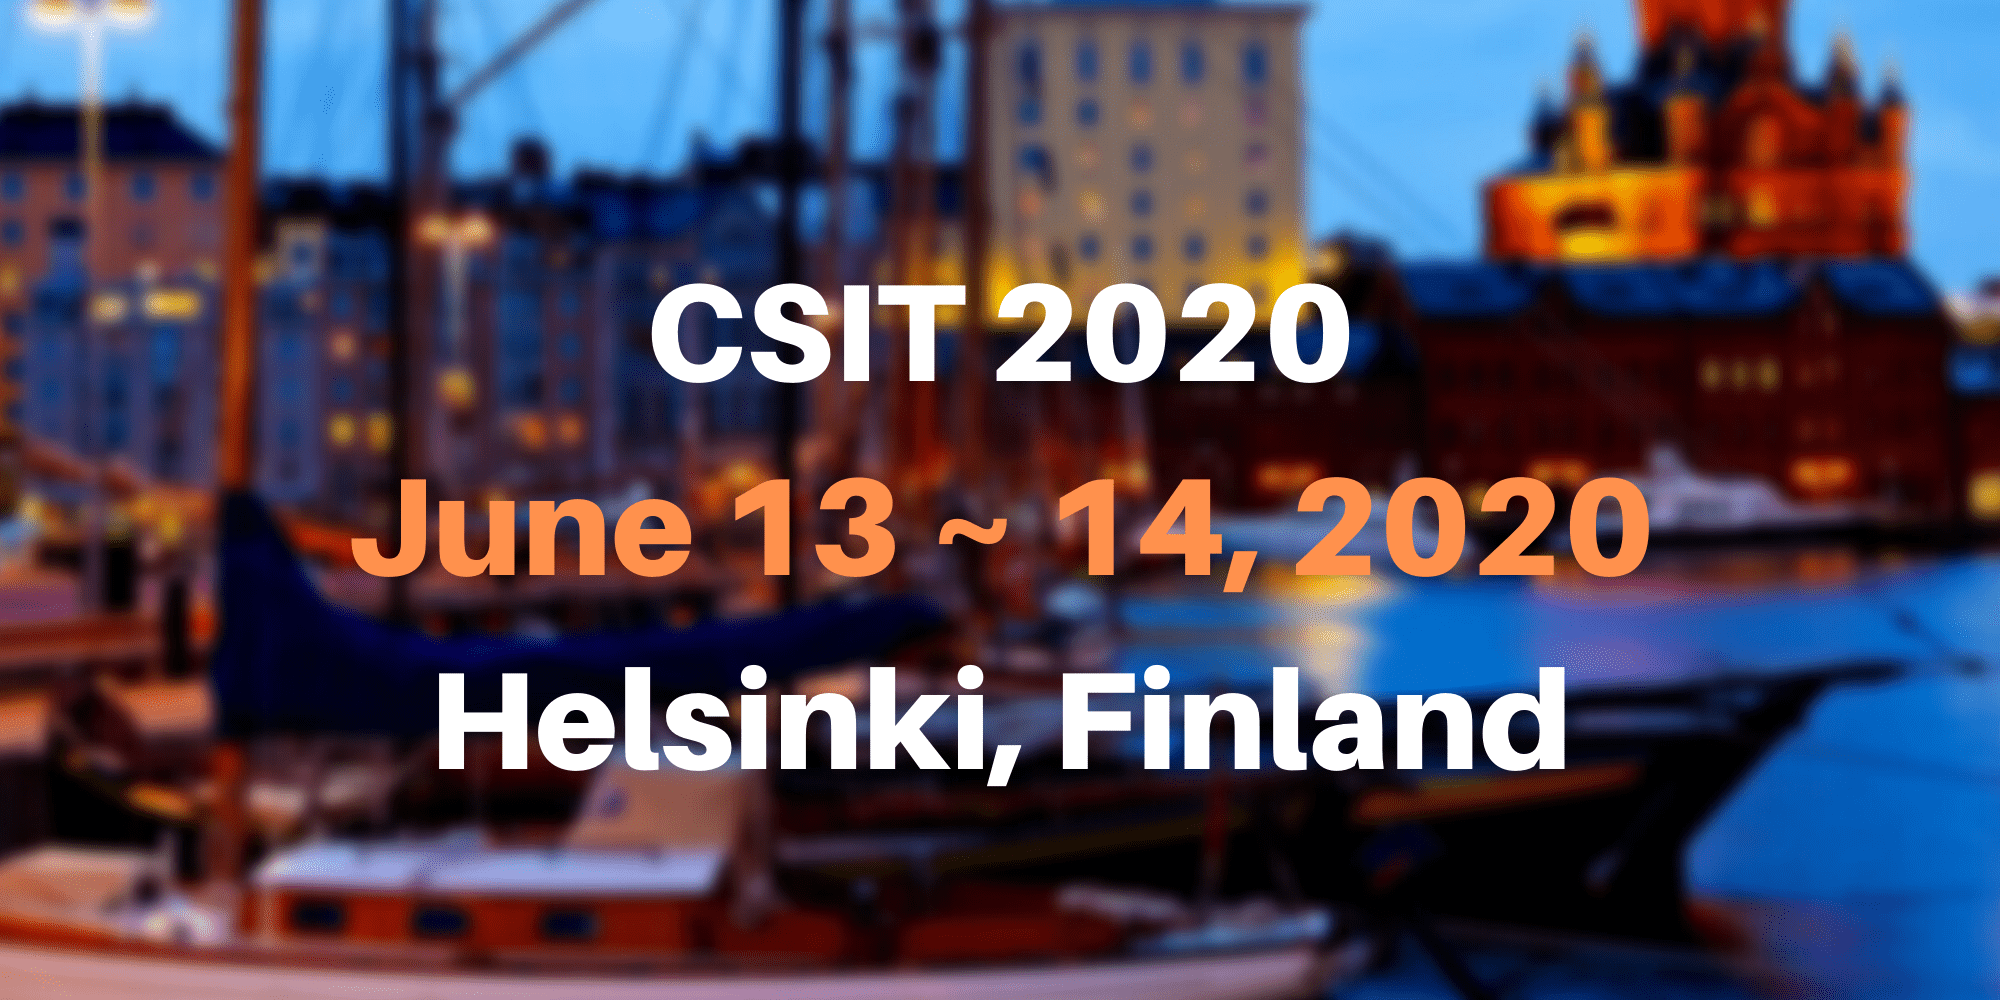 7th International Conference on Computer Science and Information Technology (CSIT 2020)